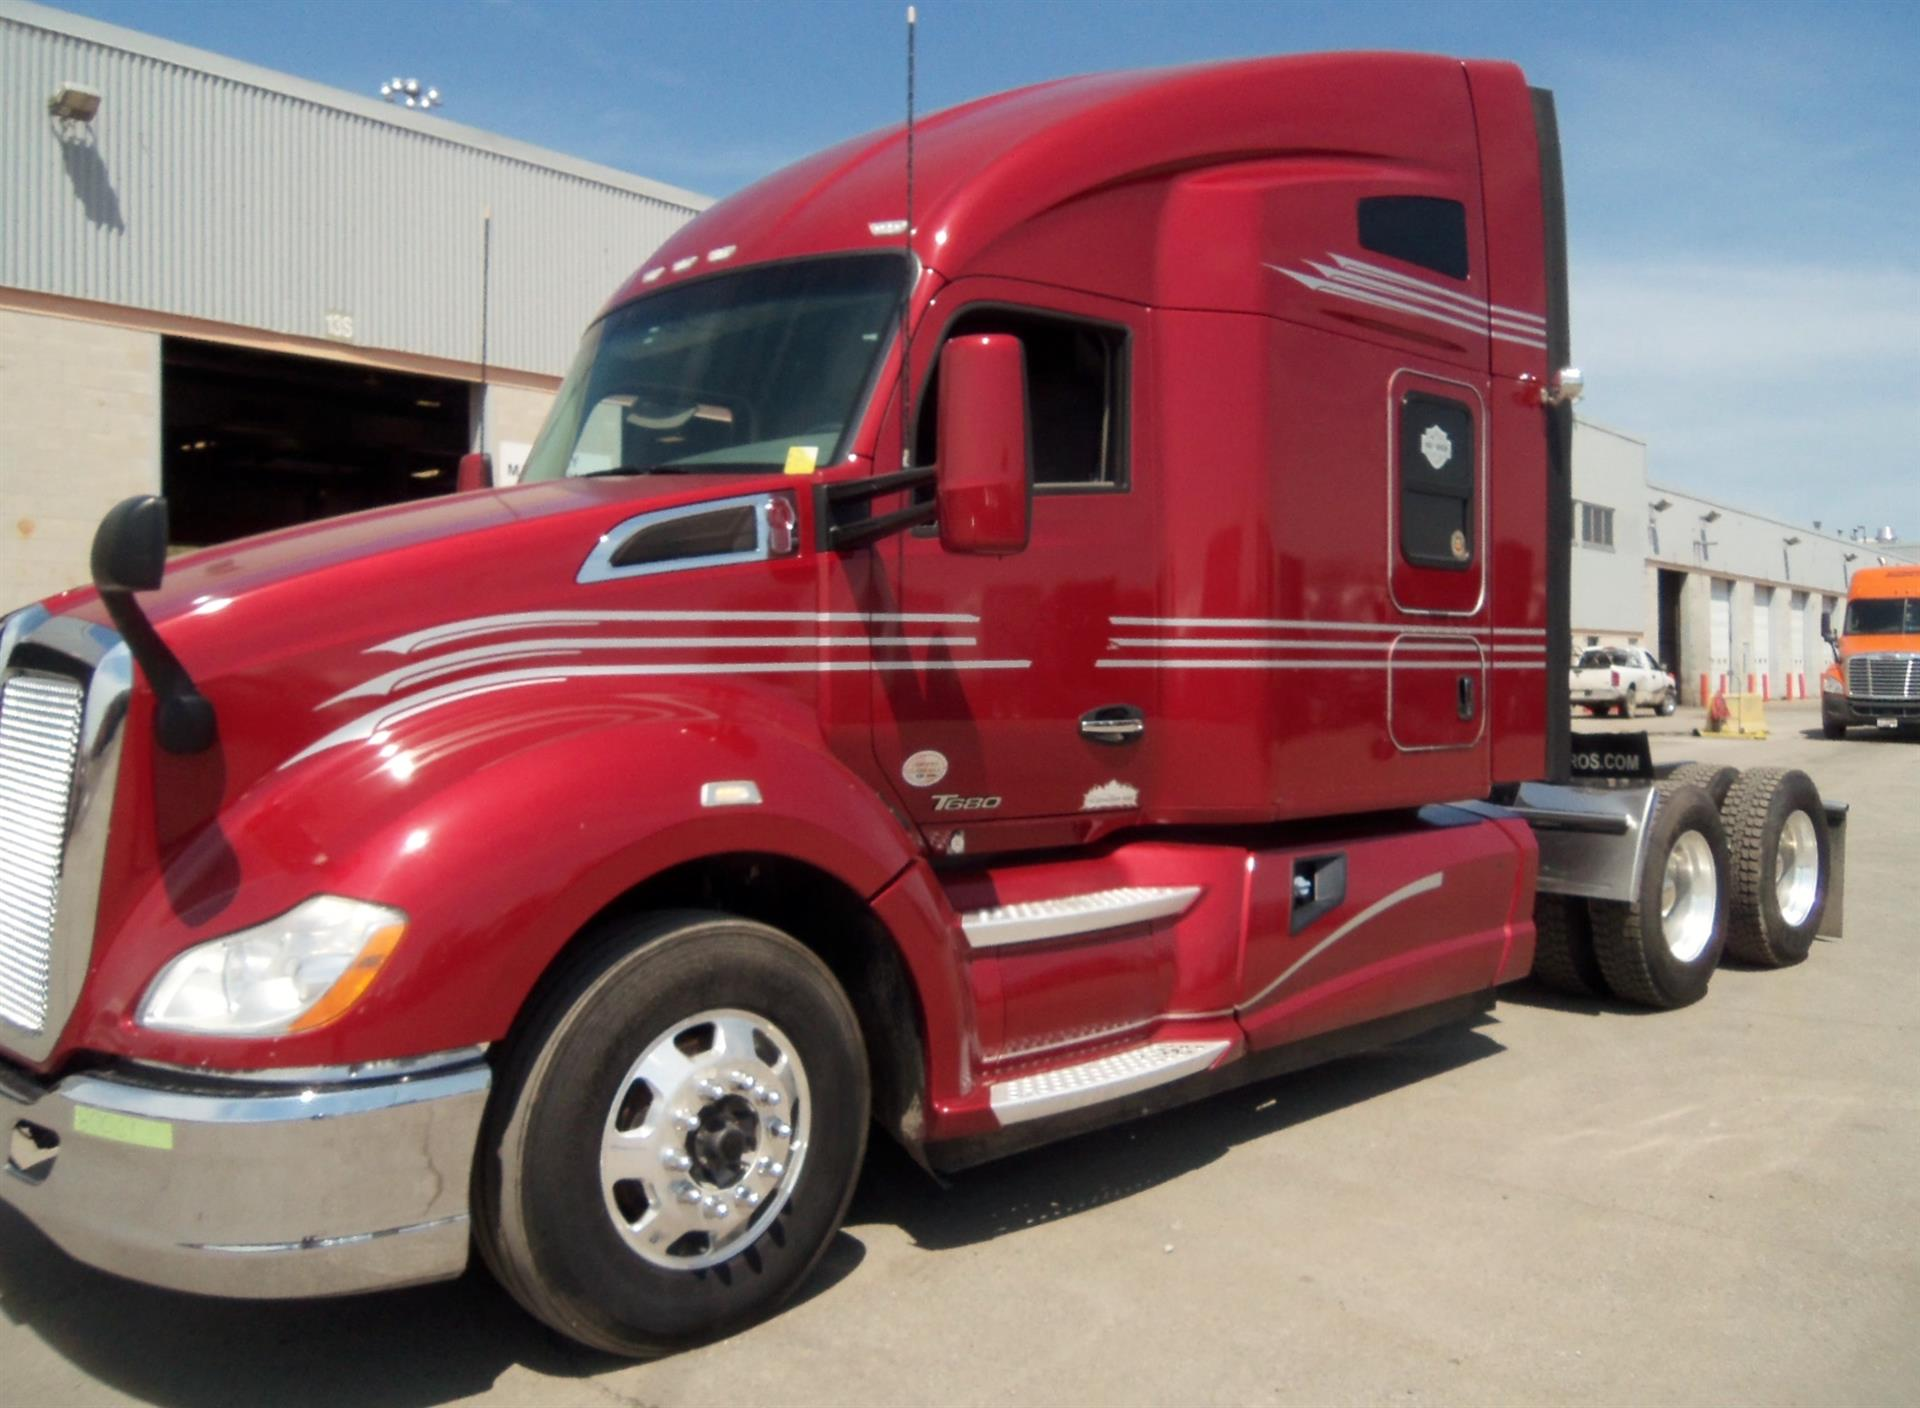 USED 2016 KENWORTH T680 SLEEPER TRUCK #123535